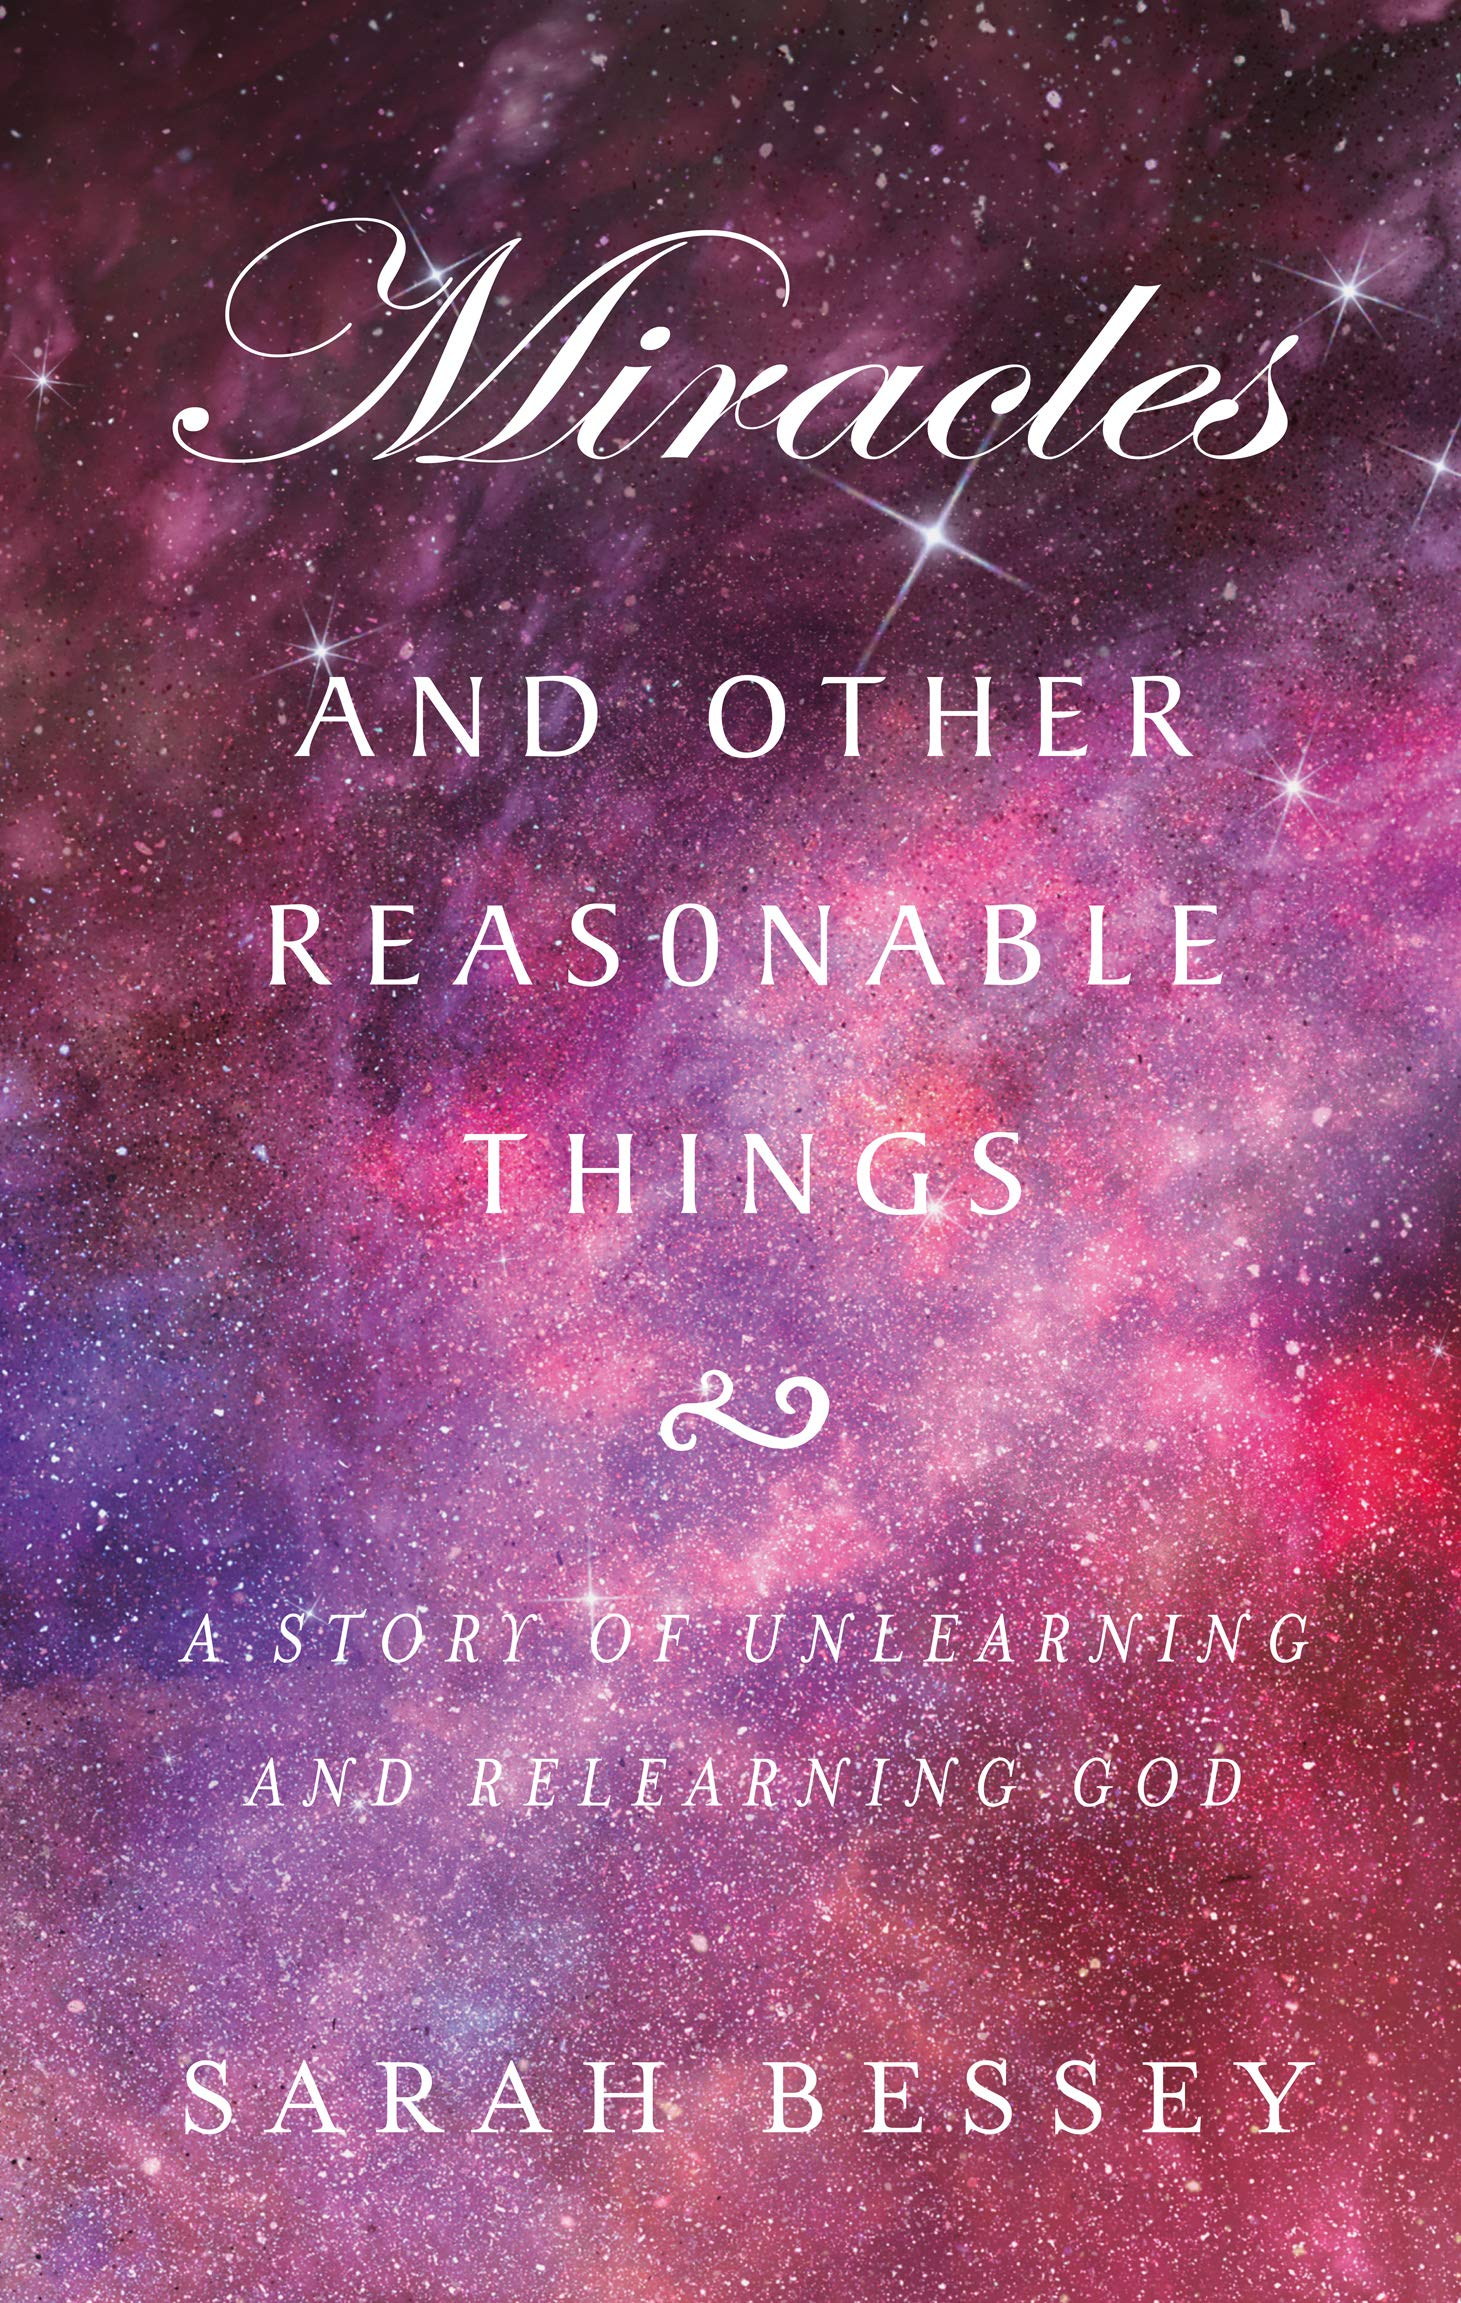 Miracles & Other Reasonable Things by Sarah Bessey